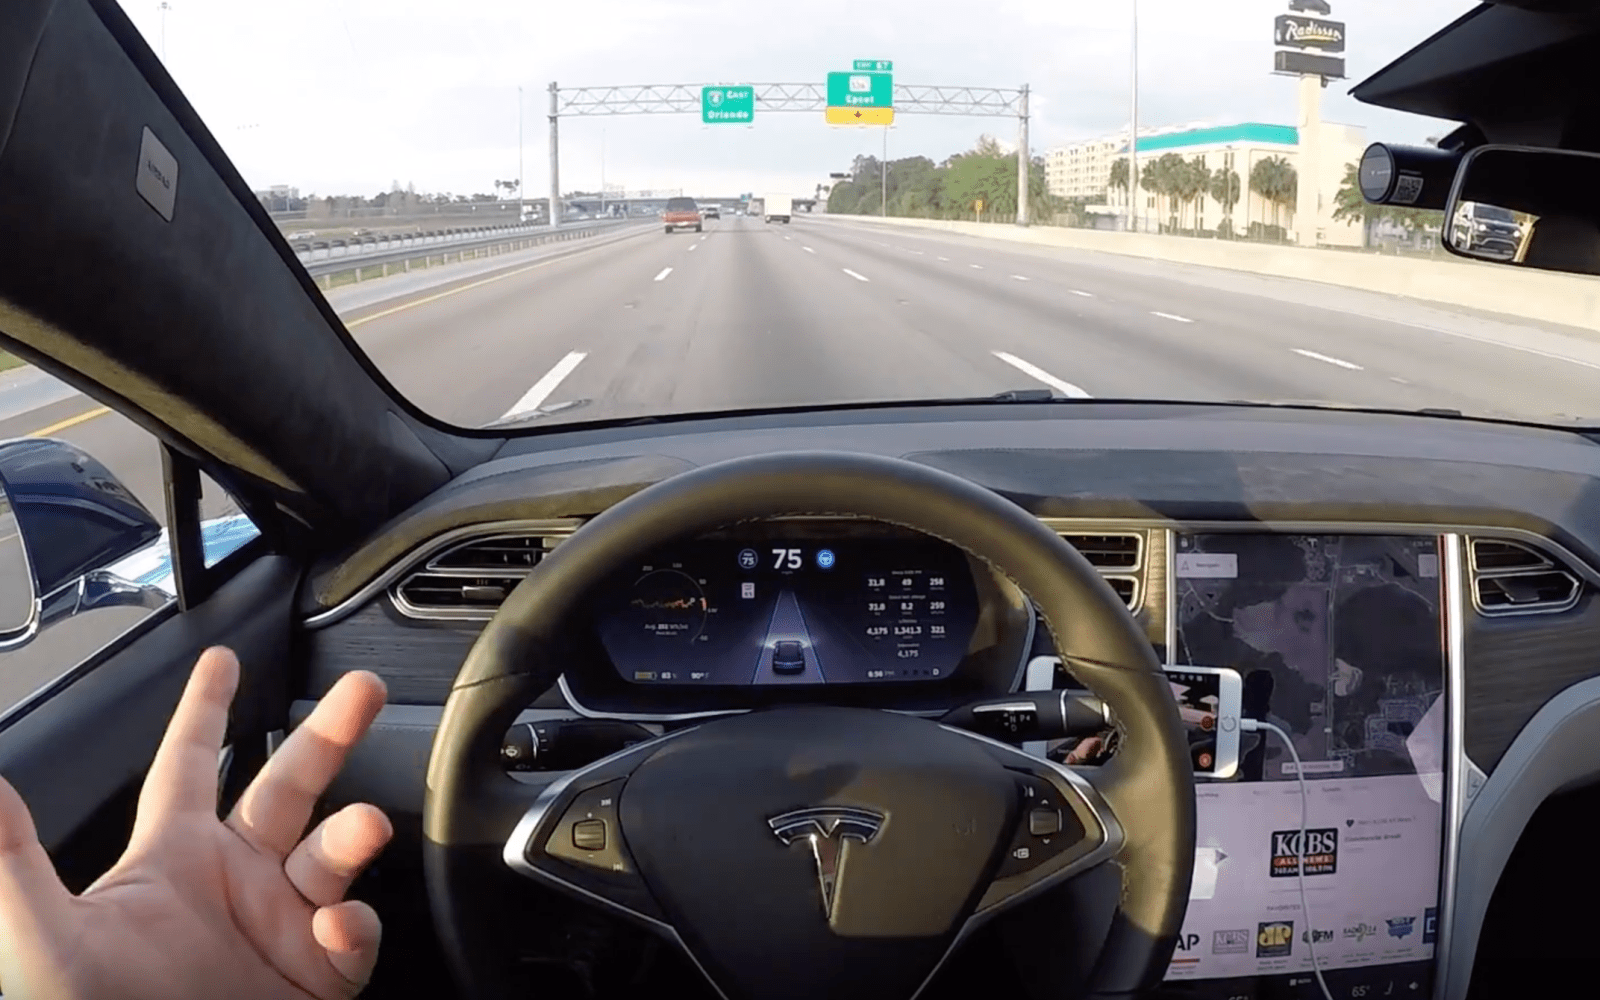 Tesla's Autopilot 2.0 is now using 2 out of 8 cameras with the new update